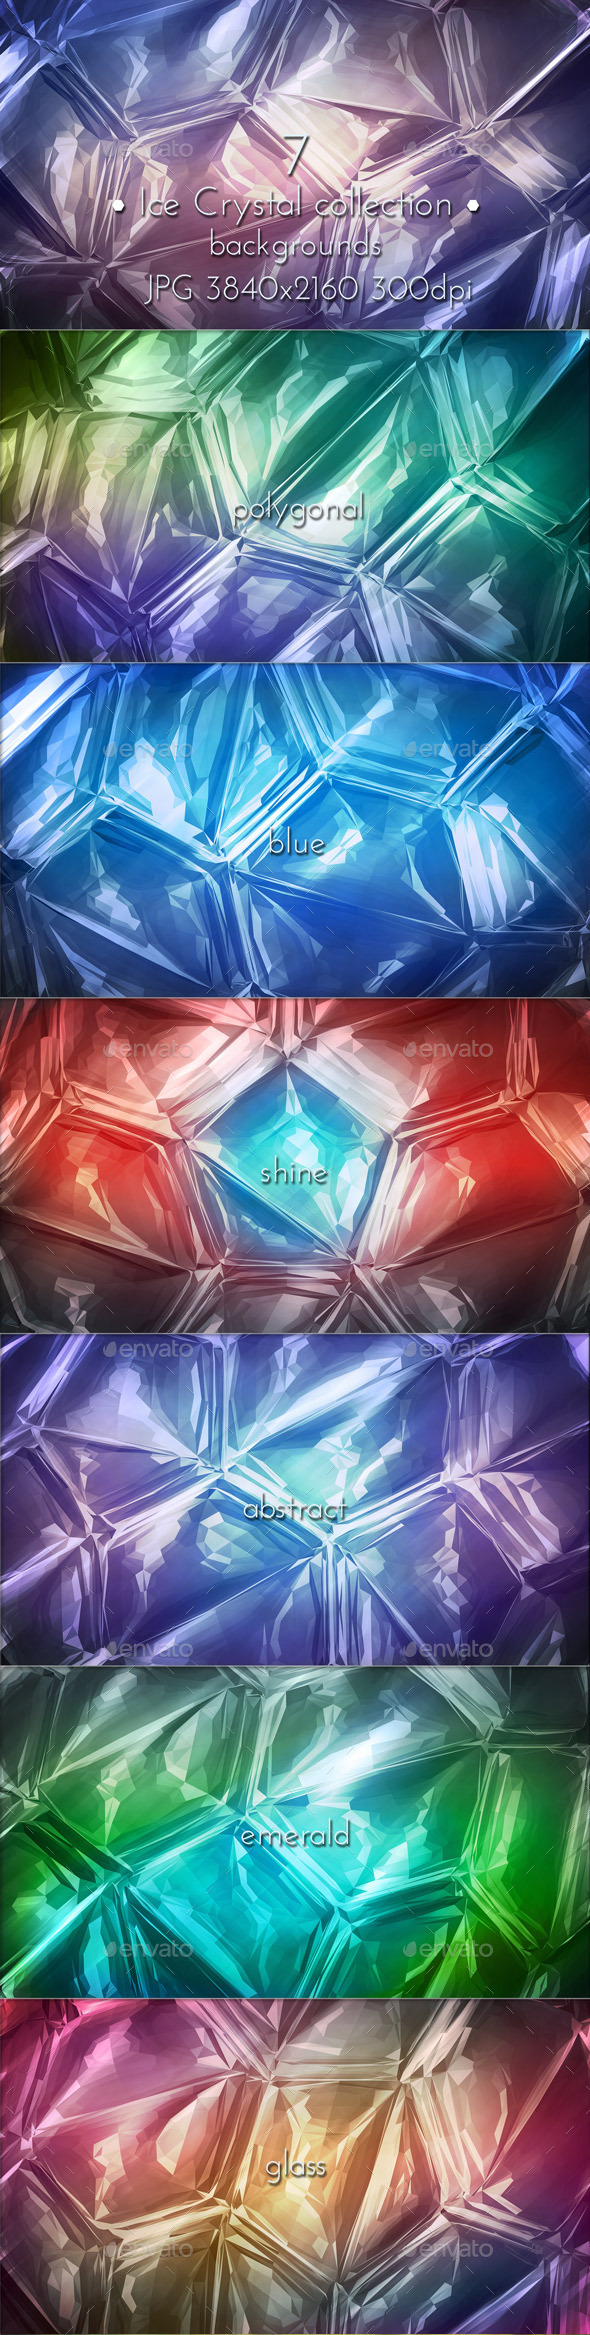 Ice Crystal Triangular - Miscellaneous Backgrounds